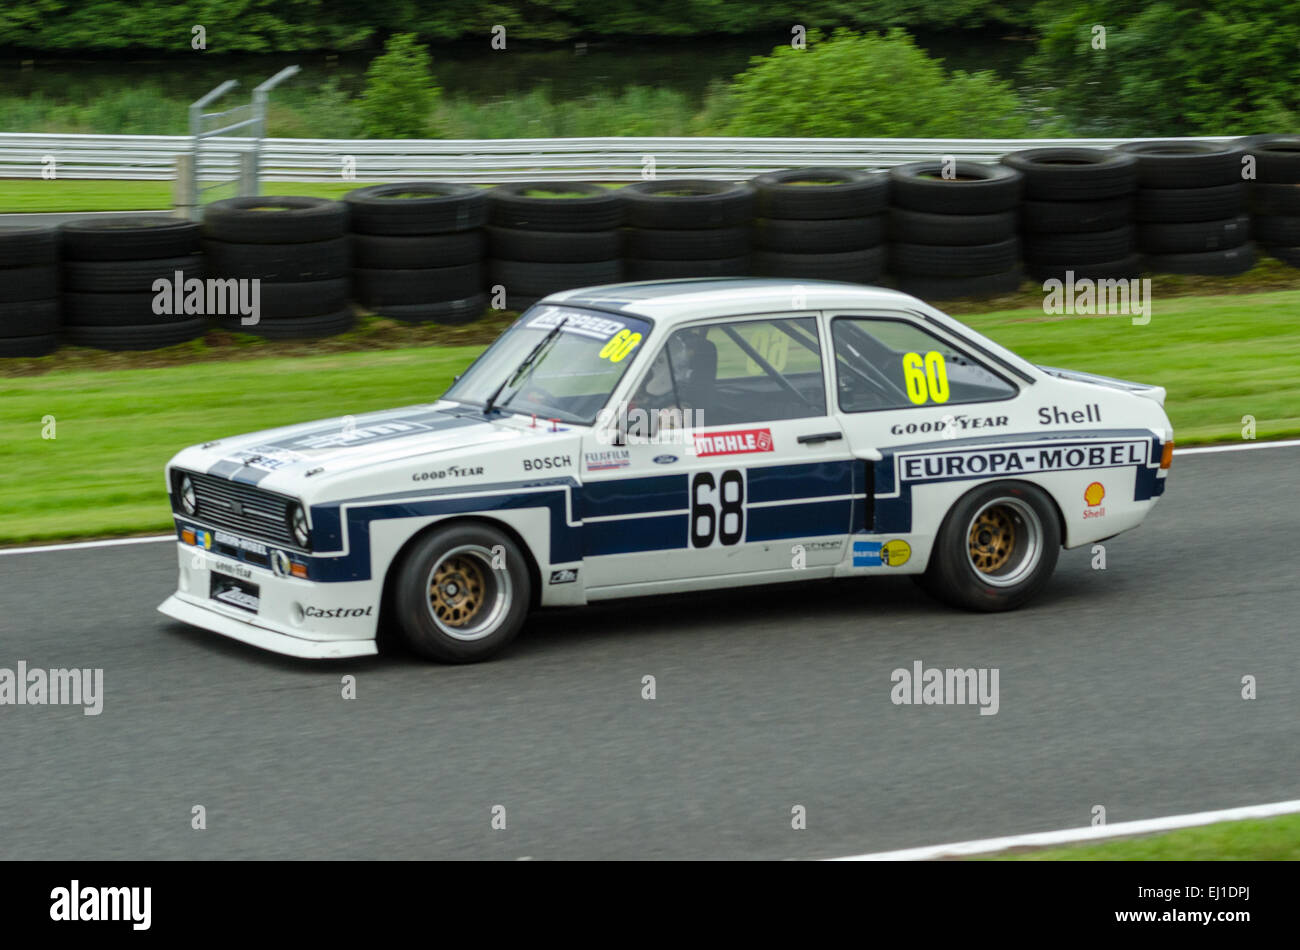 A classic car competes in a Classic Touring cars race at Oulton Park race circuit - Stock Image